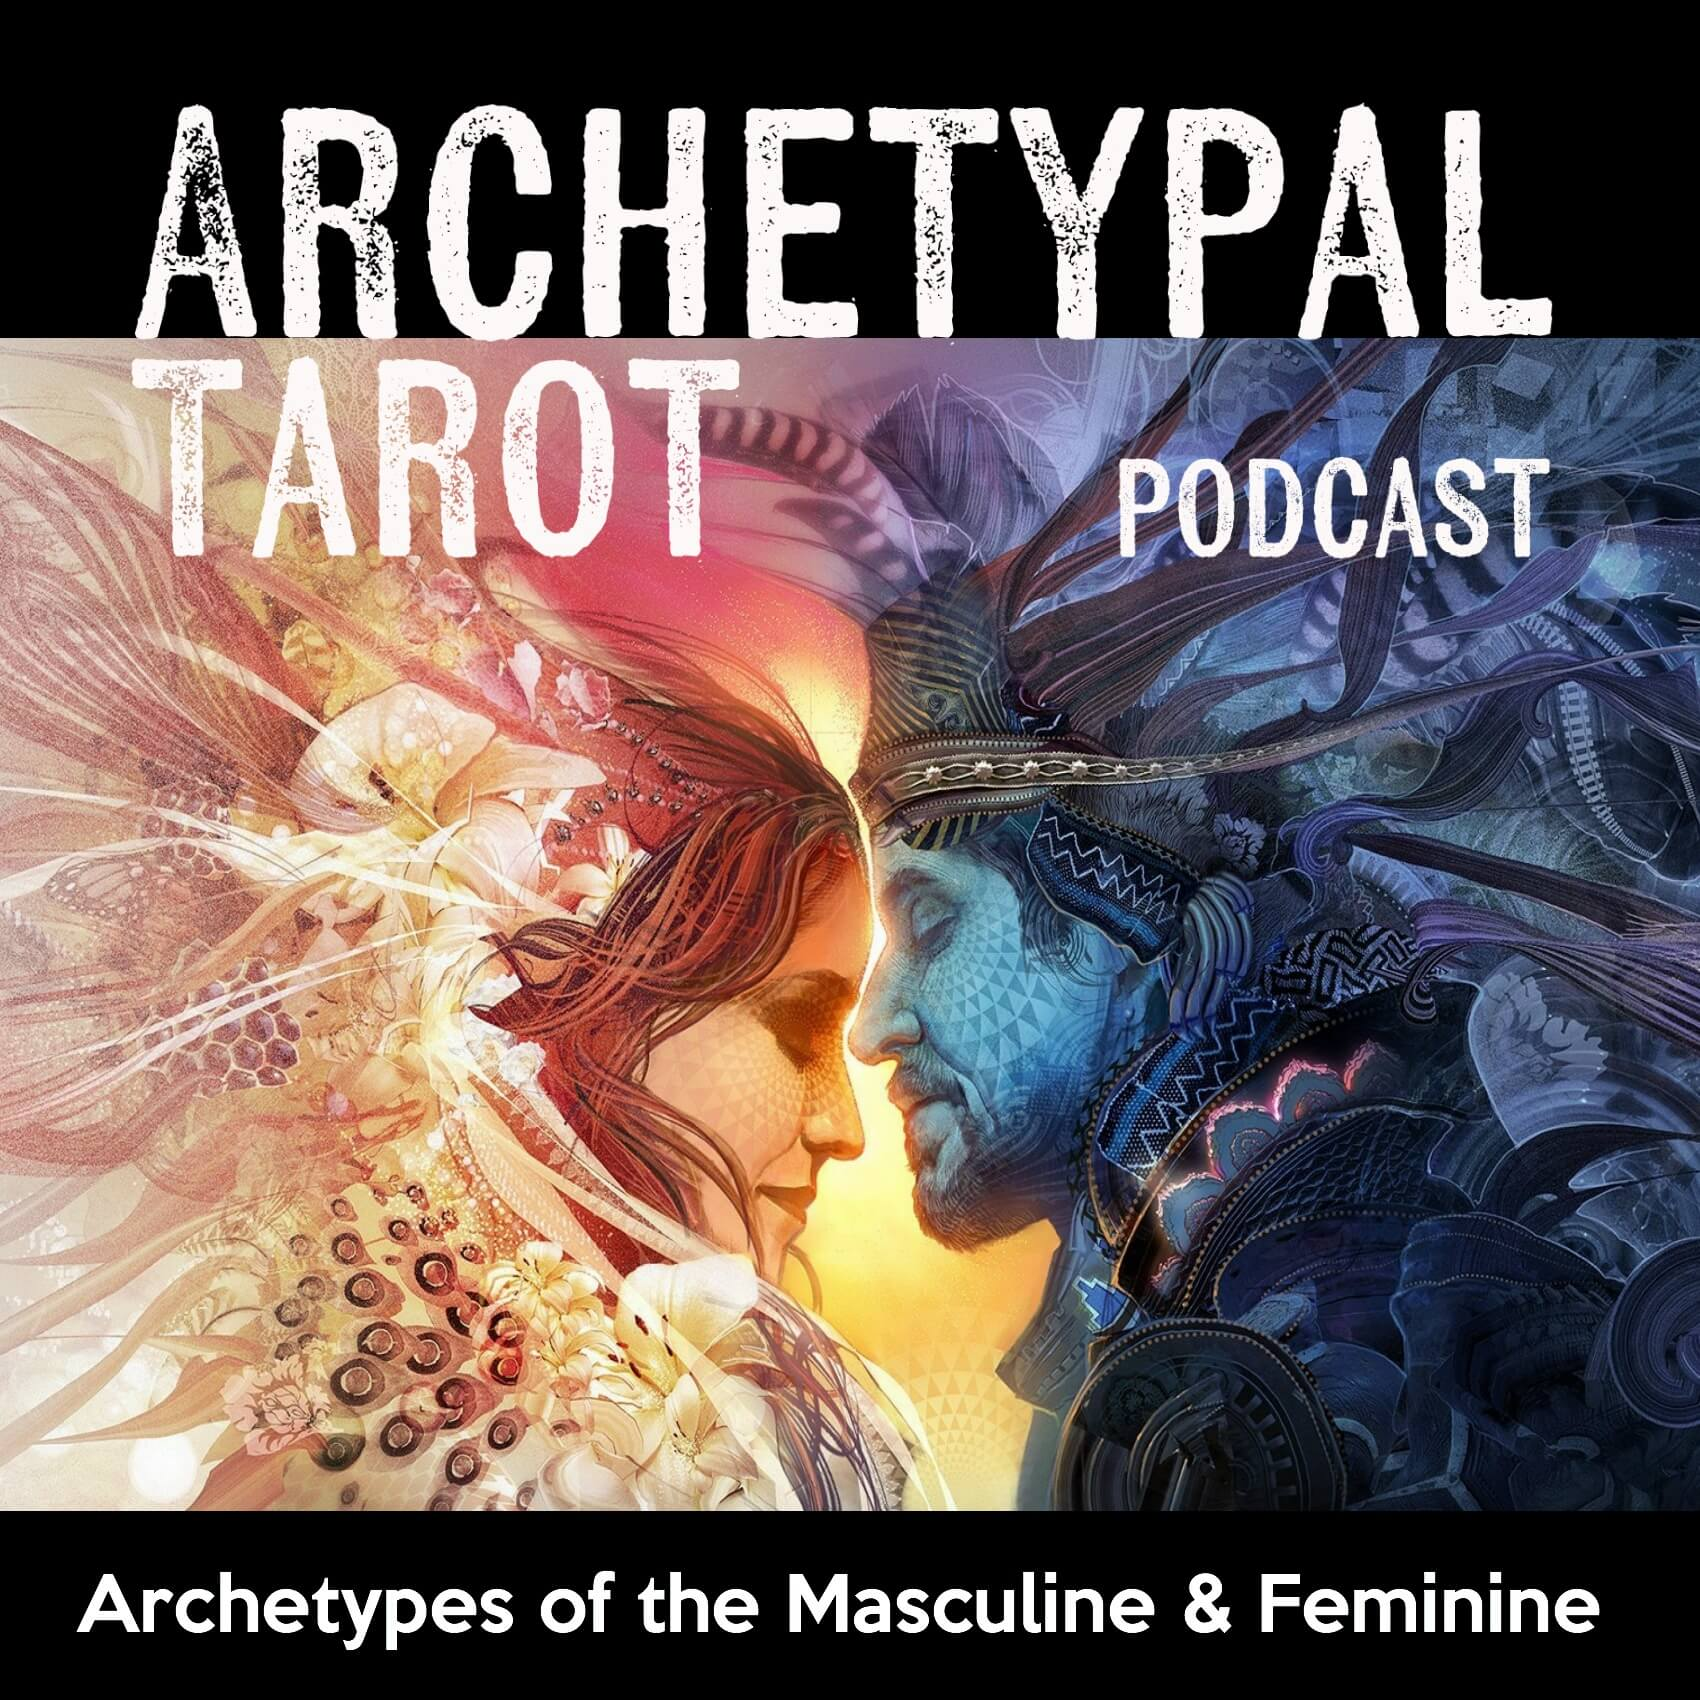 Archetypes of the Masculine & Feminine